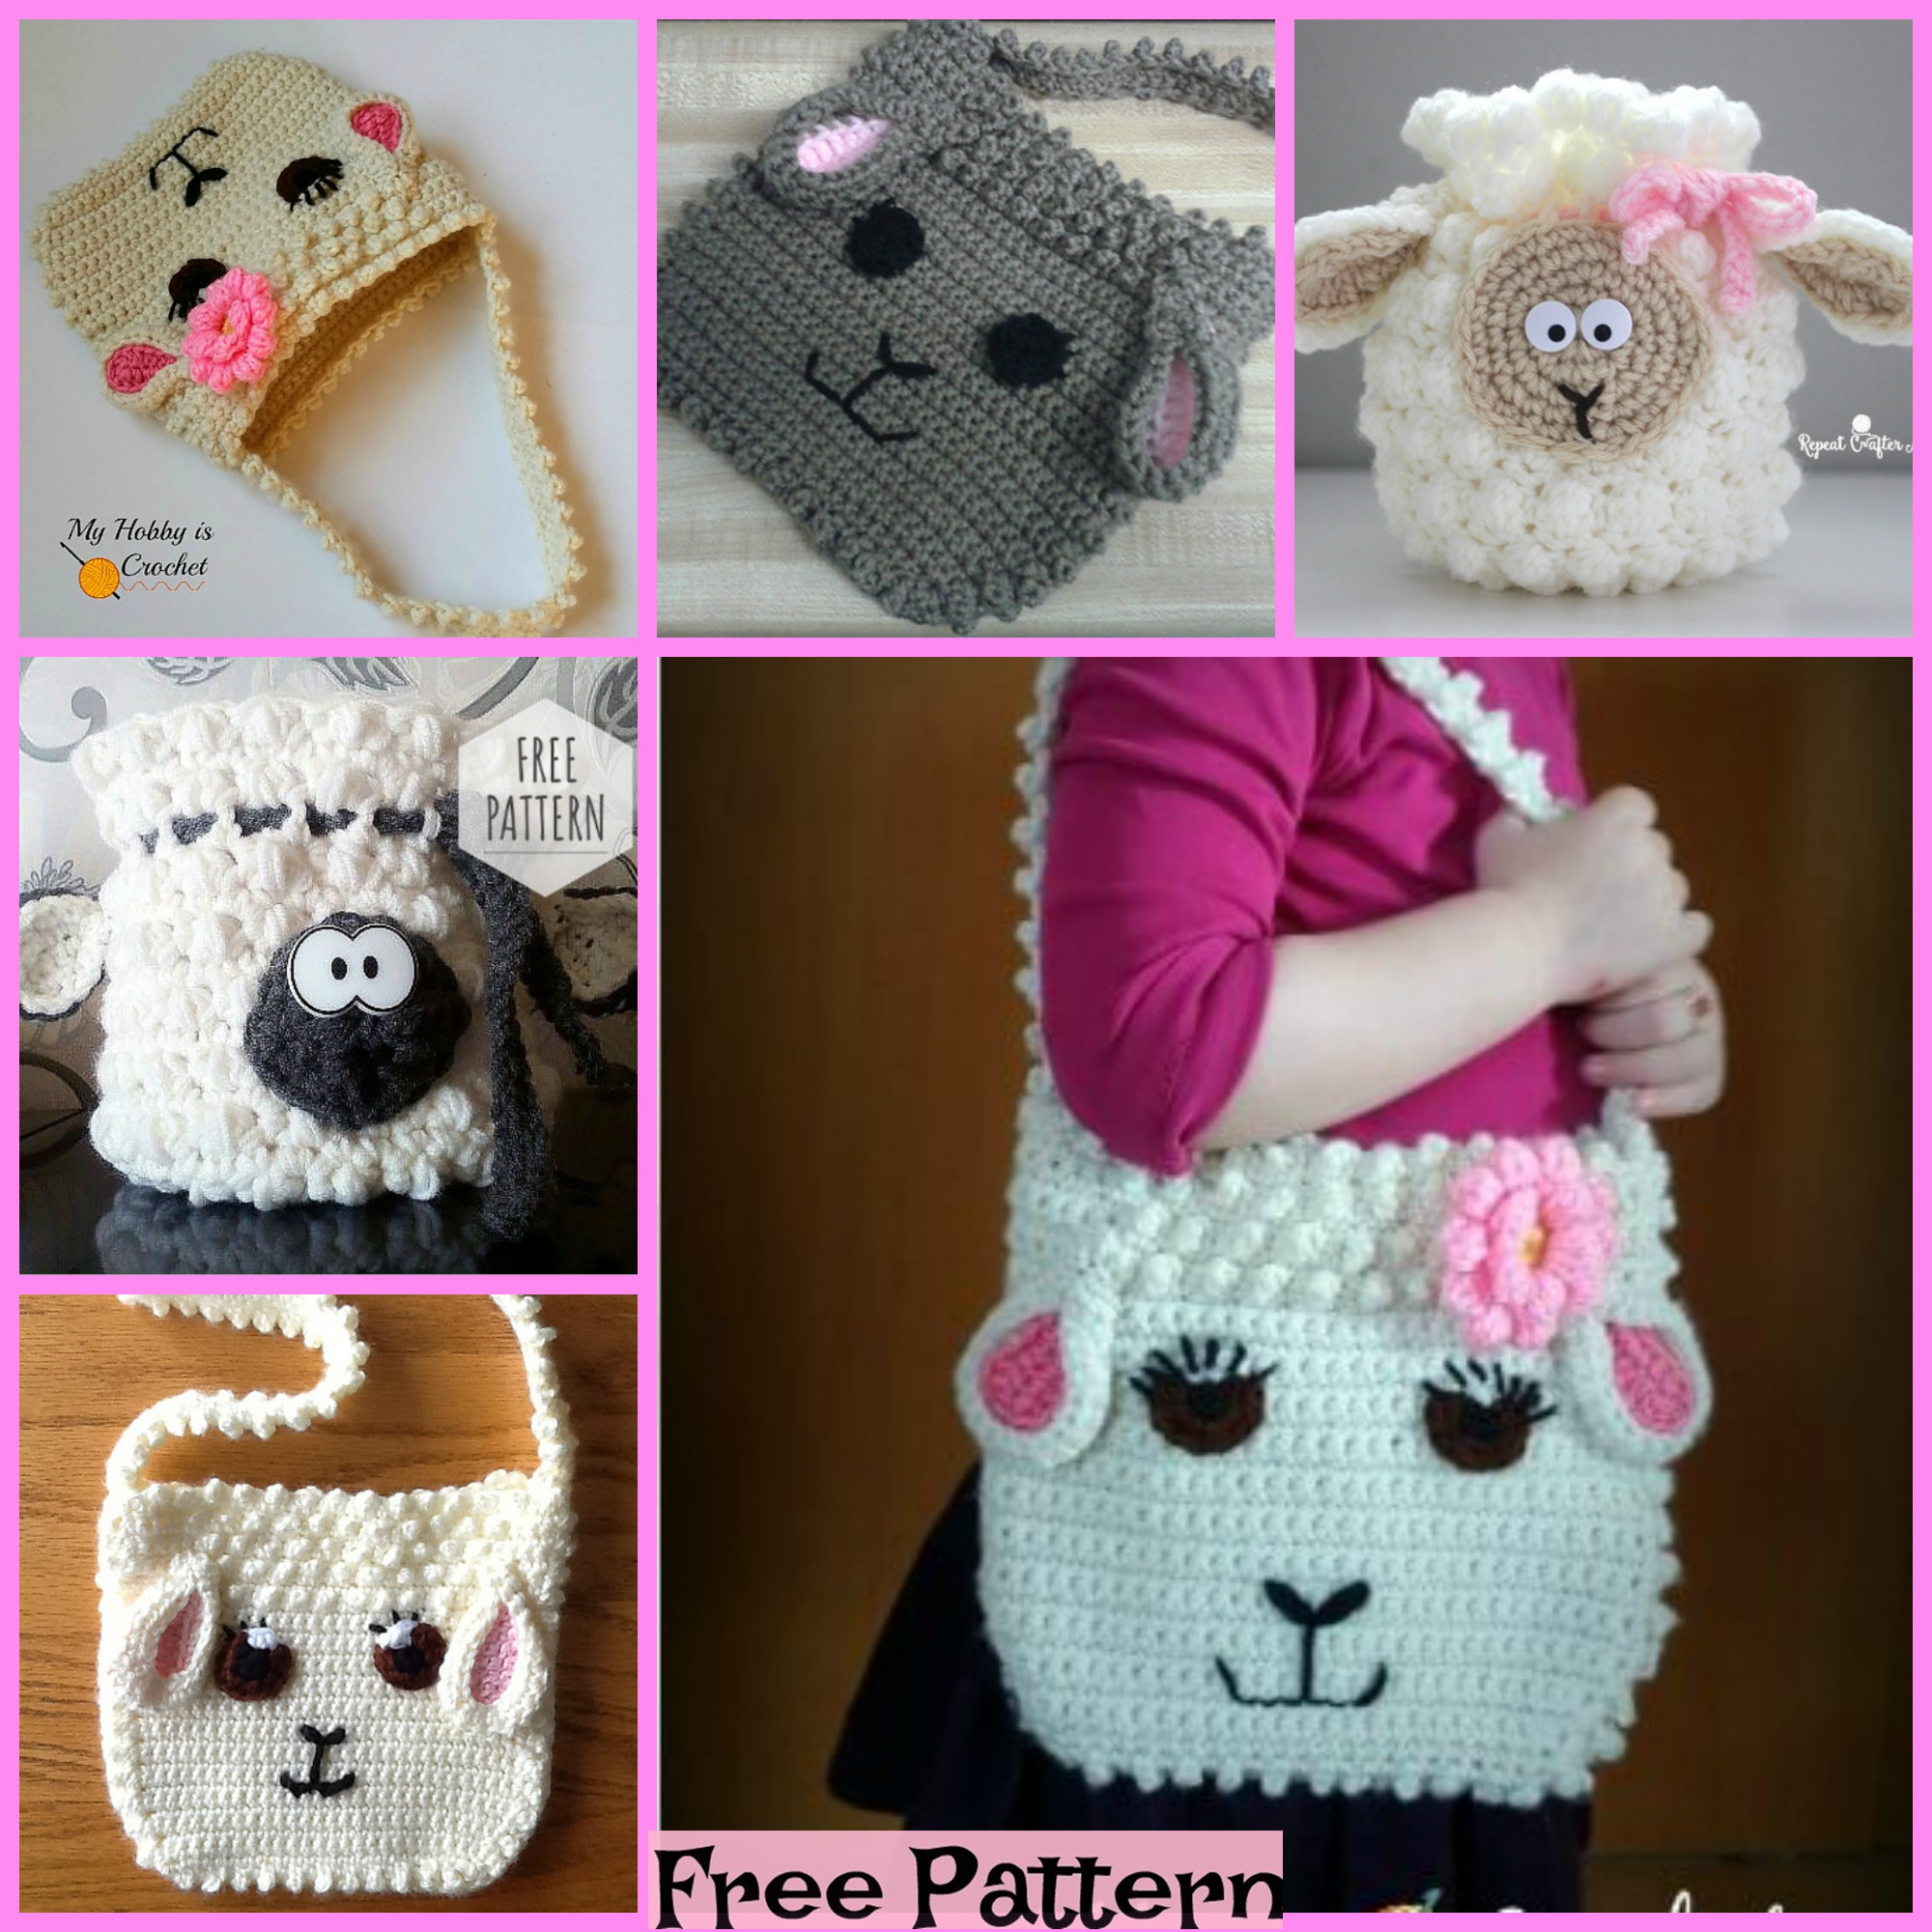 diy4ever-Cute Crochet Sheep Bag - Free Patterns